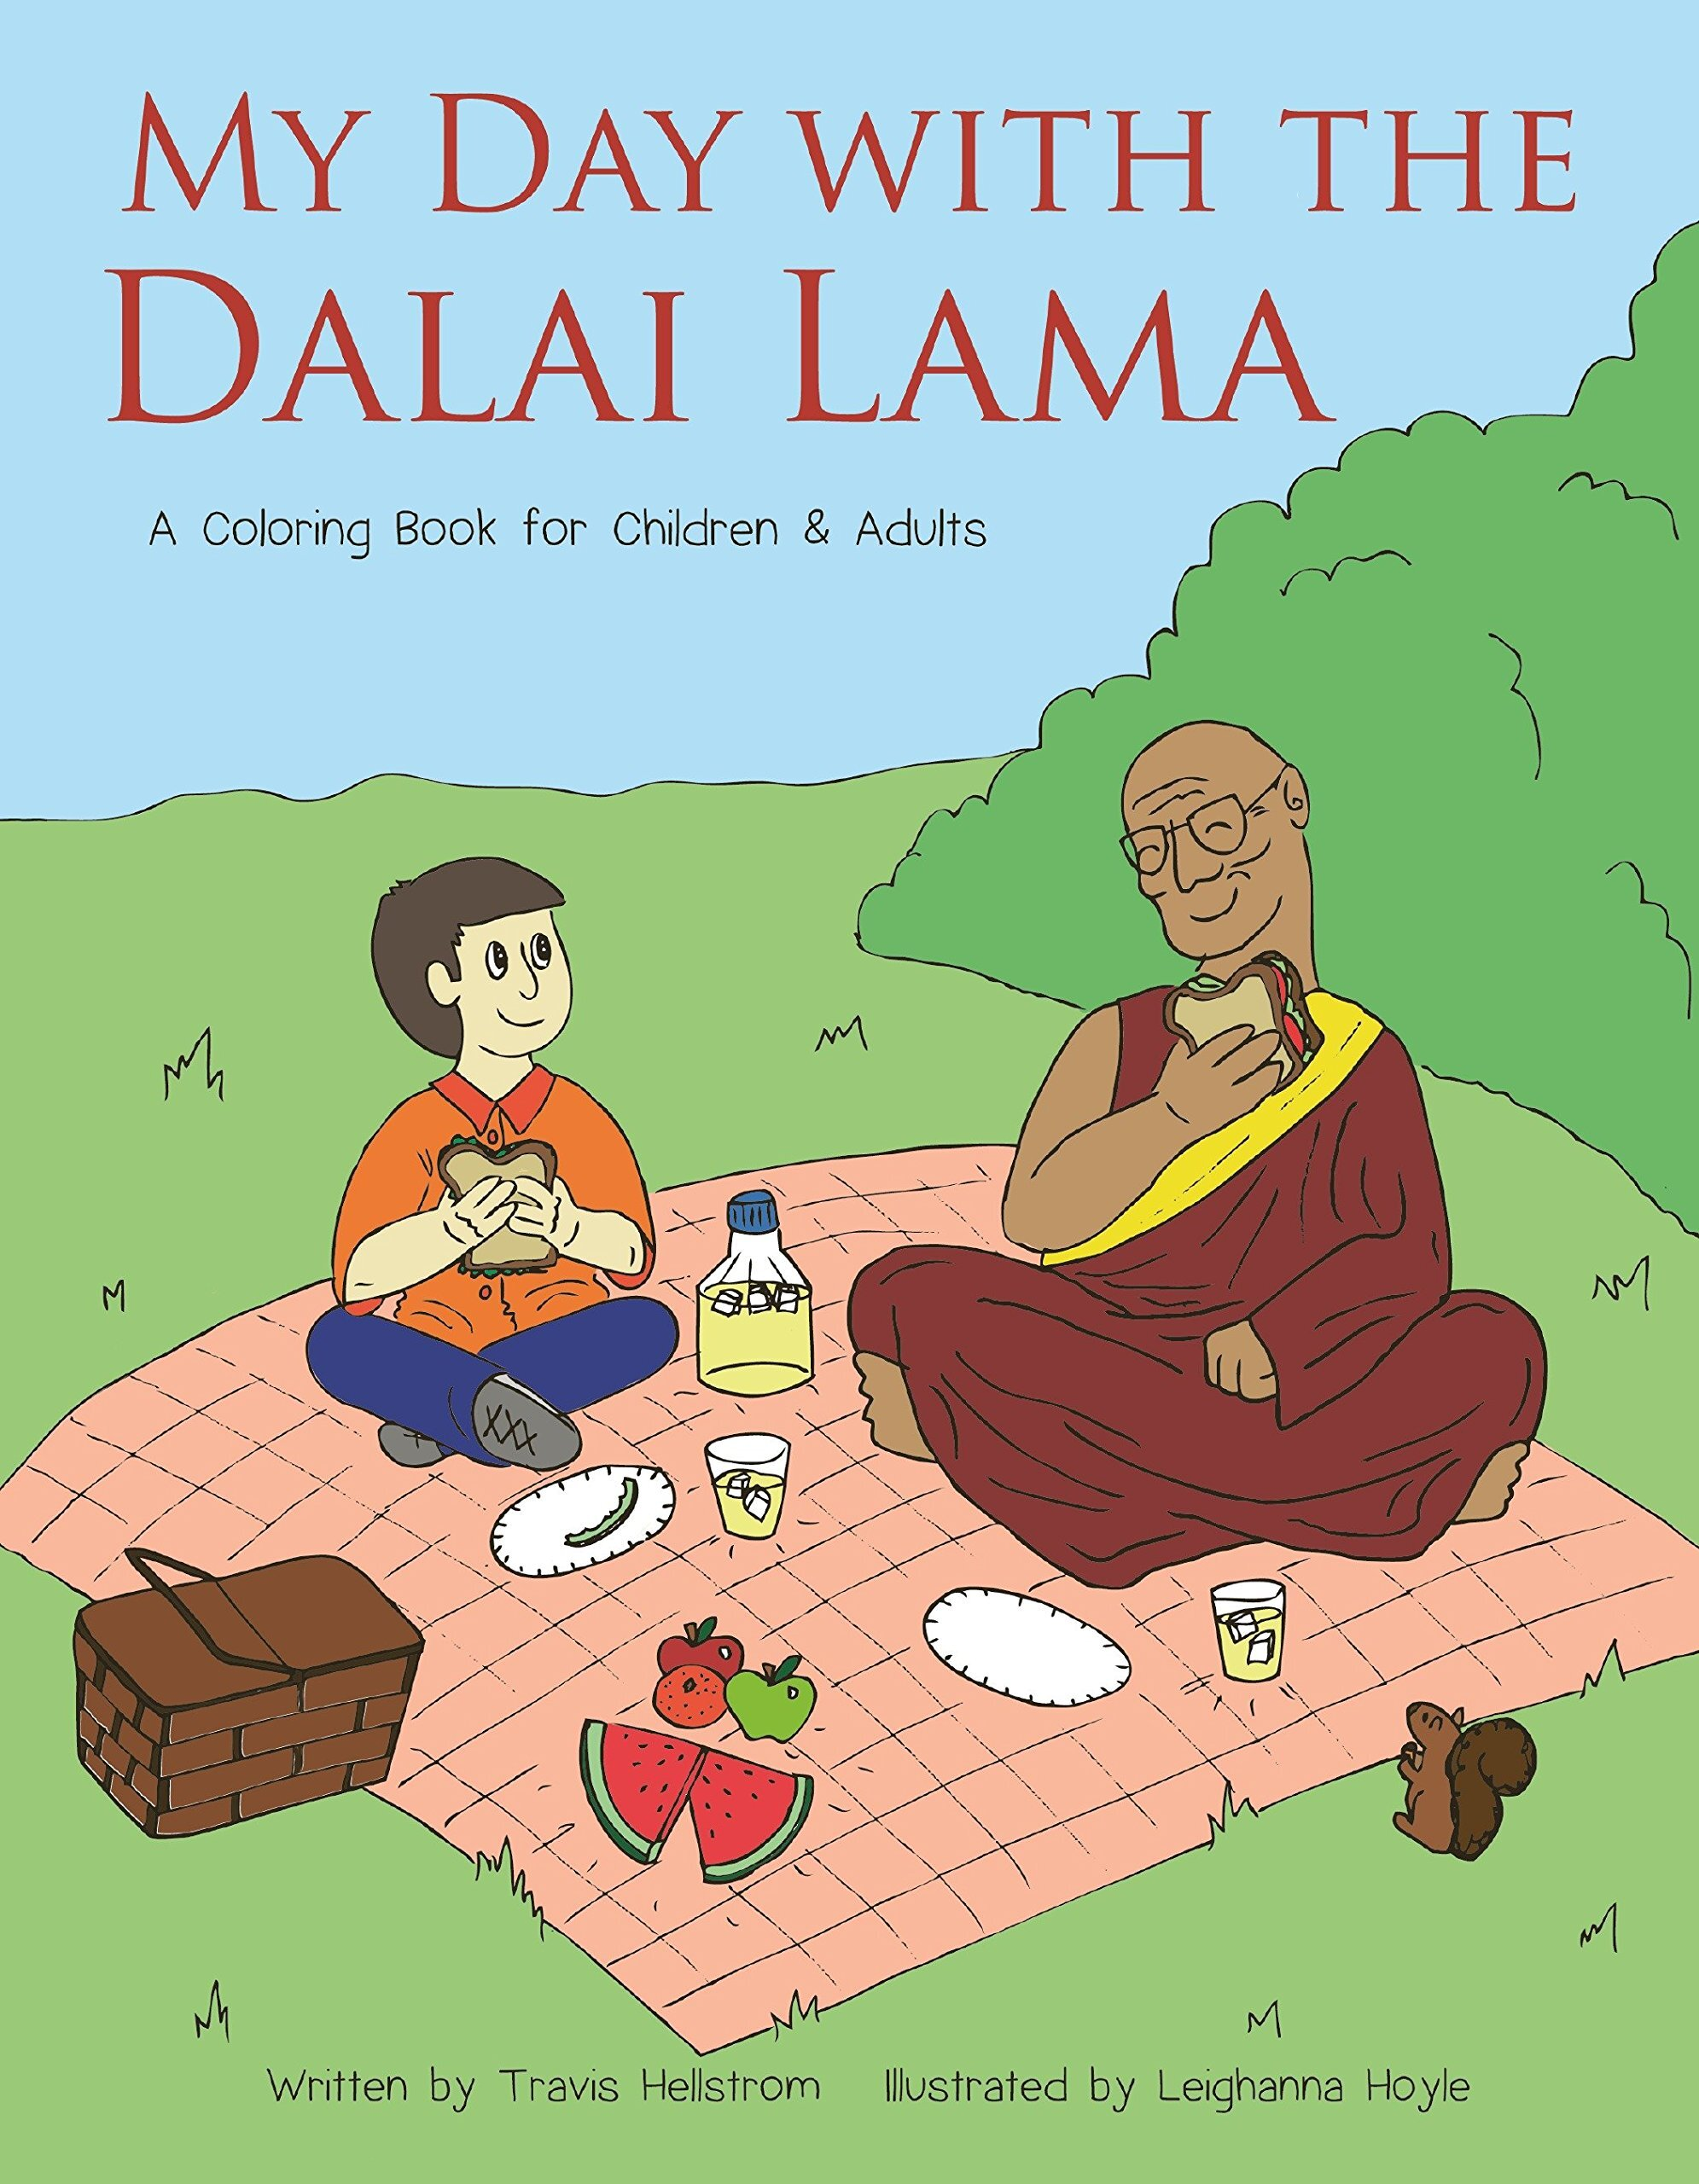 DalaiLama_COVmech_112916proof copy.png